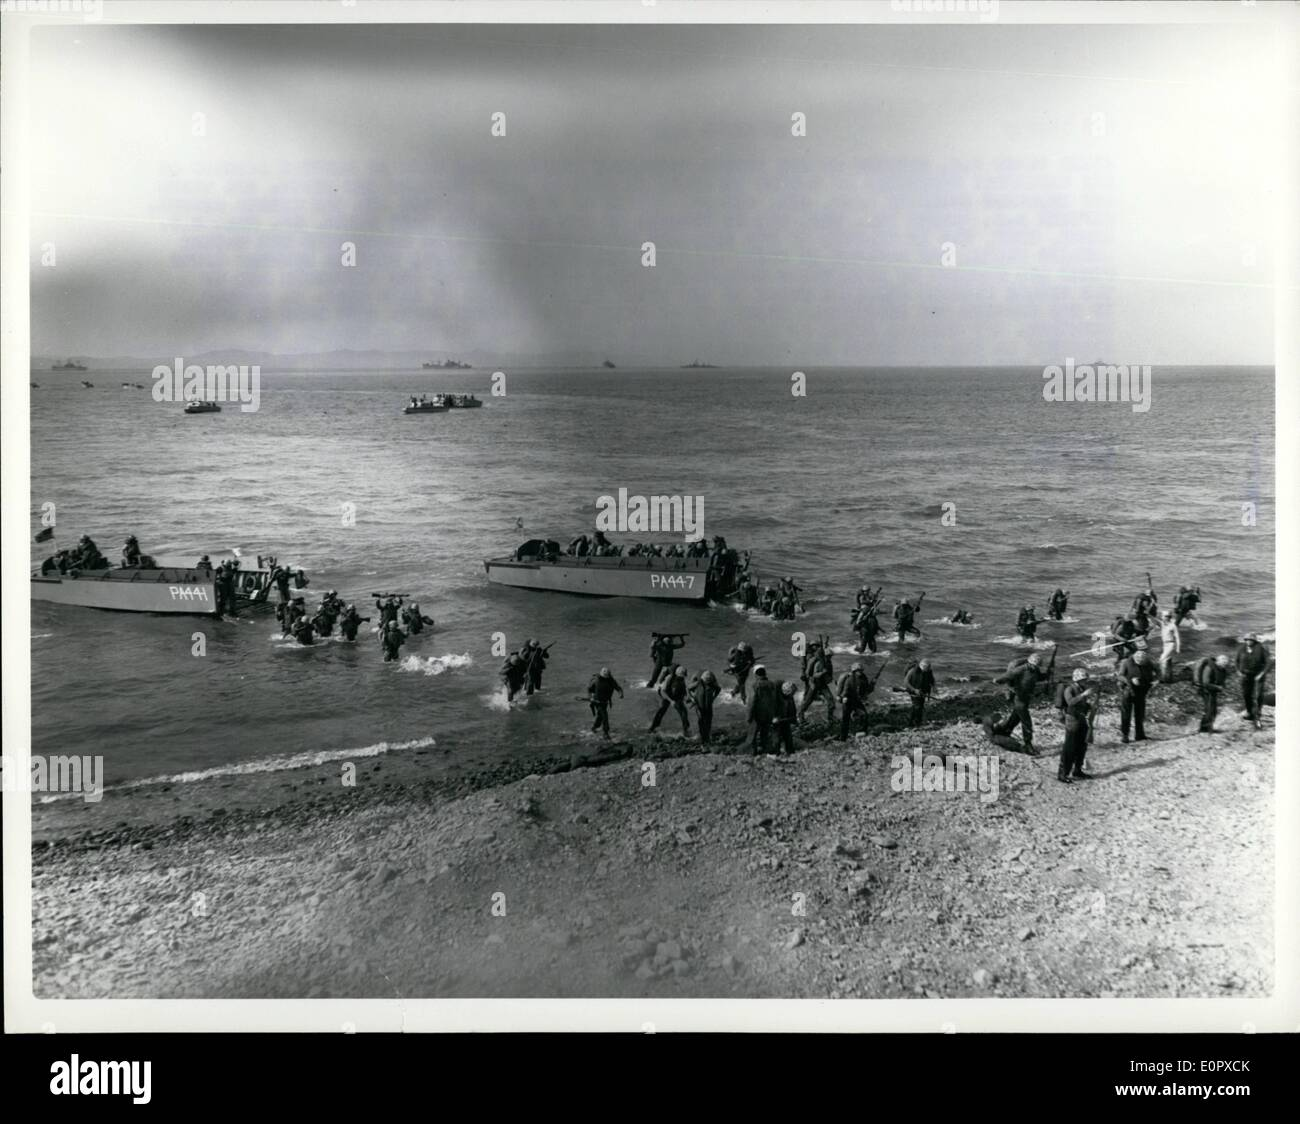 Apr. 04, 1957 - Sixth Fleet U.S. Marines of the second battalion (reimforced) made an assault landing on the Galli  of Turkey 12 April as part of NATO exercise  pivot The three-day exercise involved land, sea and air forces of Turkey, Britain and the United States. Captain B.S. sos Jr. USN was is command of the amphibious task force. Lieutnant Colonel A. I. Lean,  has in command of the 1800 man reforced Battalion compasing the marine landing force - Stock Image